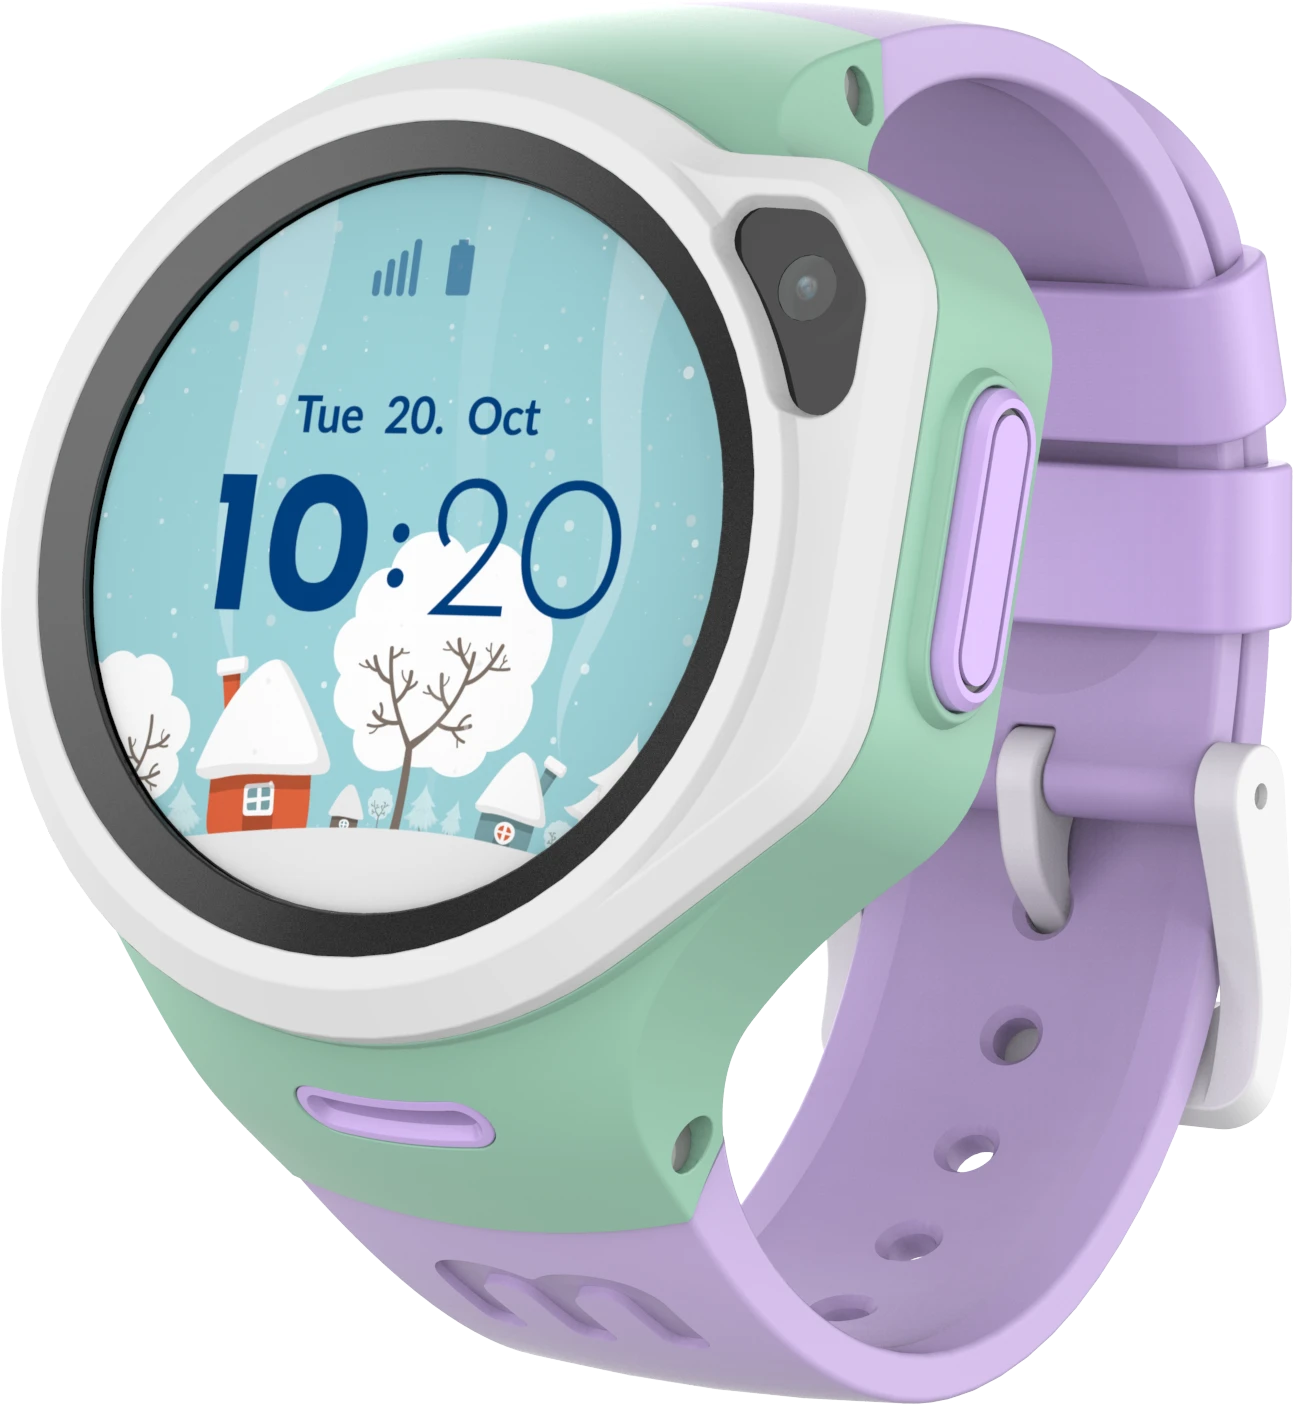 myFirst Fone R1 - Smart watch phone for kids with gps tracker